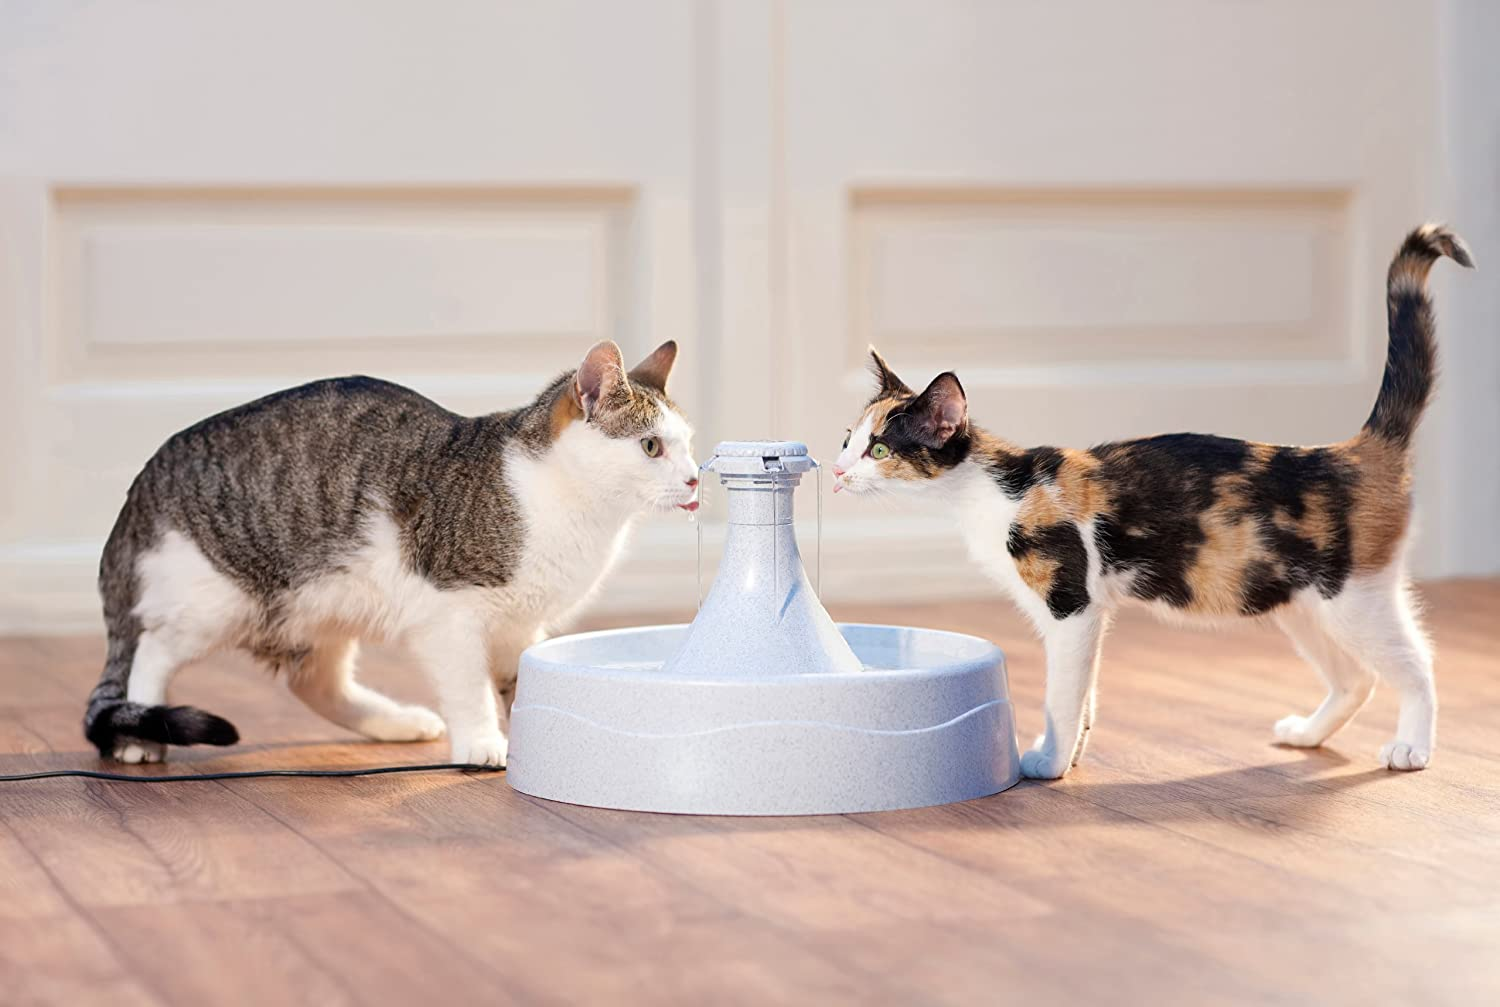 Amazon.com : PetSafe Drinkwell 360 Dog and Cat Water Fountain, 128 ...